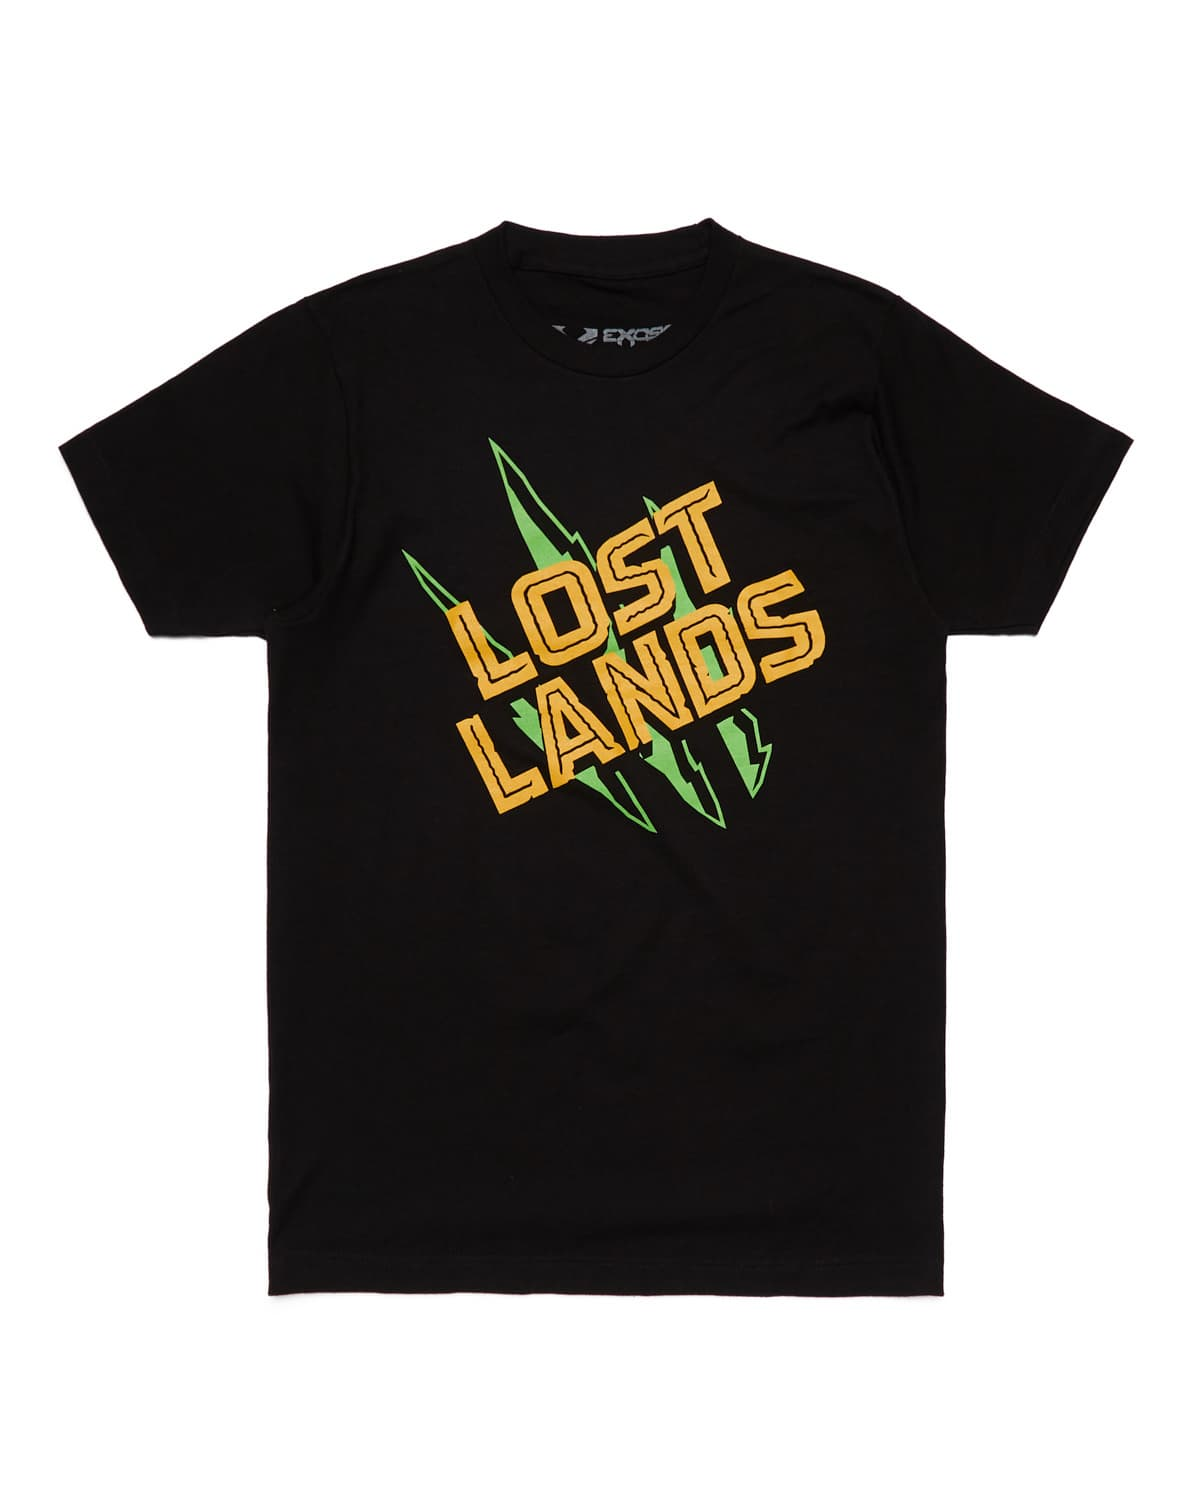 Lost Lands 'Slasher' Tee - Black/Yellow